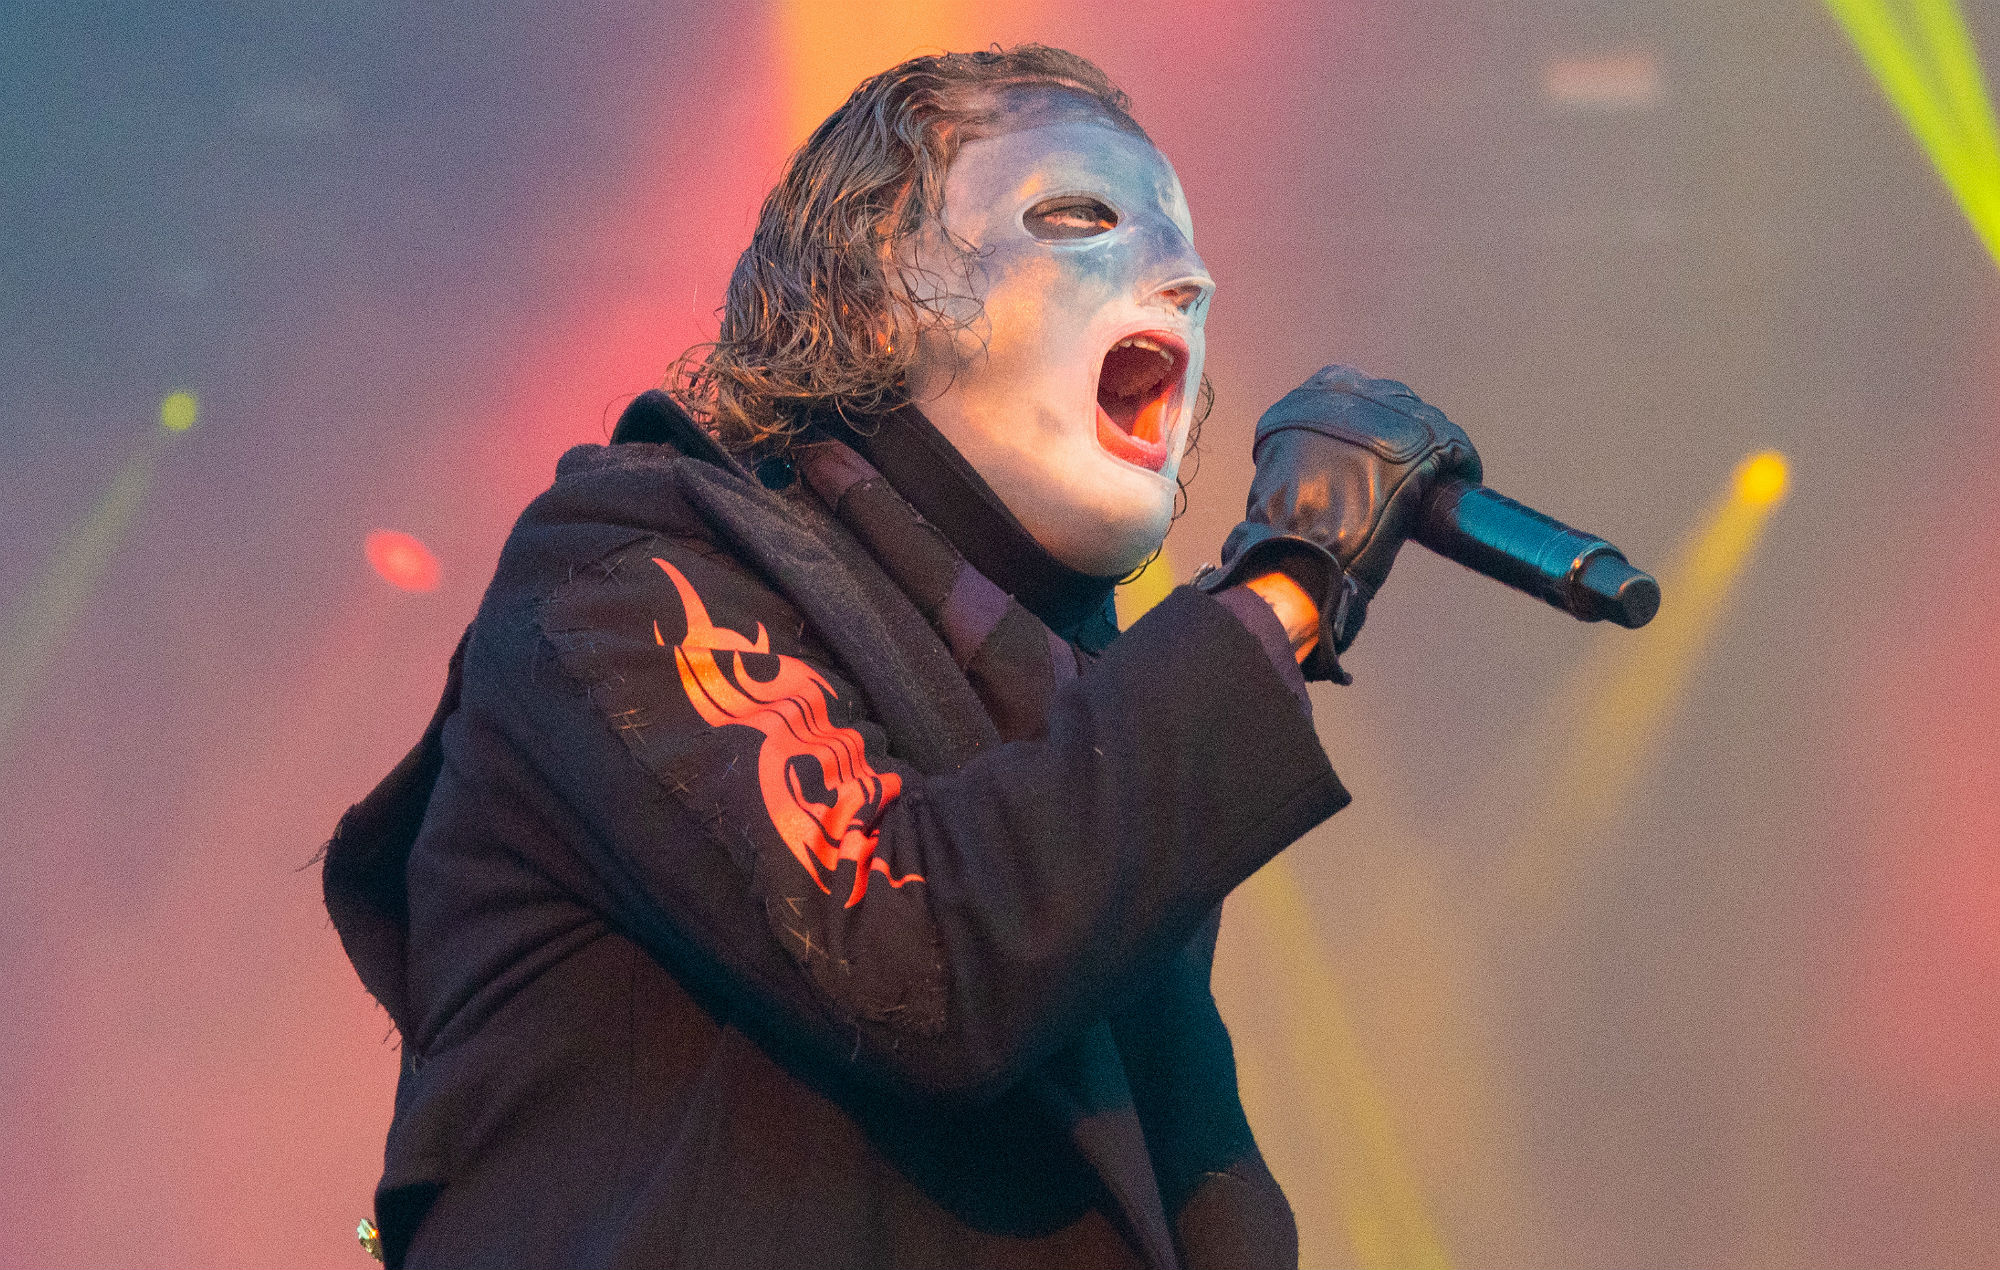 Watch Slipknot's Corey Taylor meet seriously convincing doppelgänger at fan event